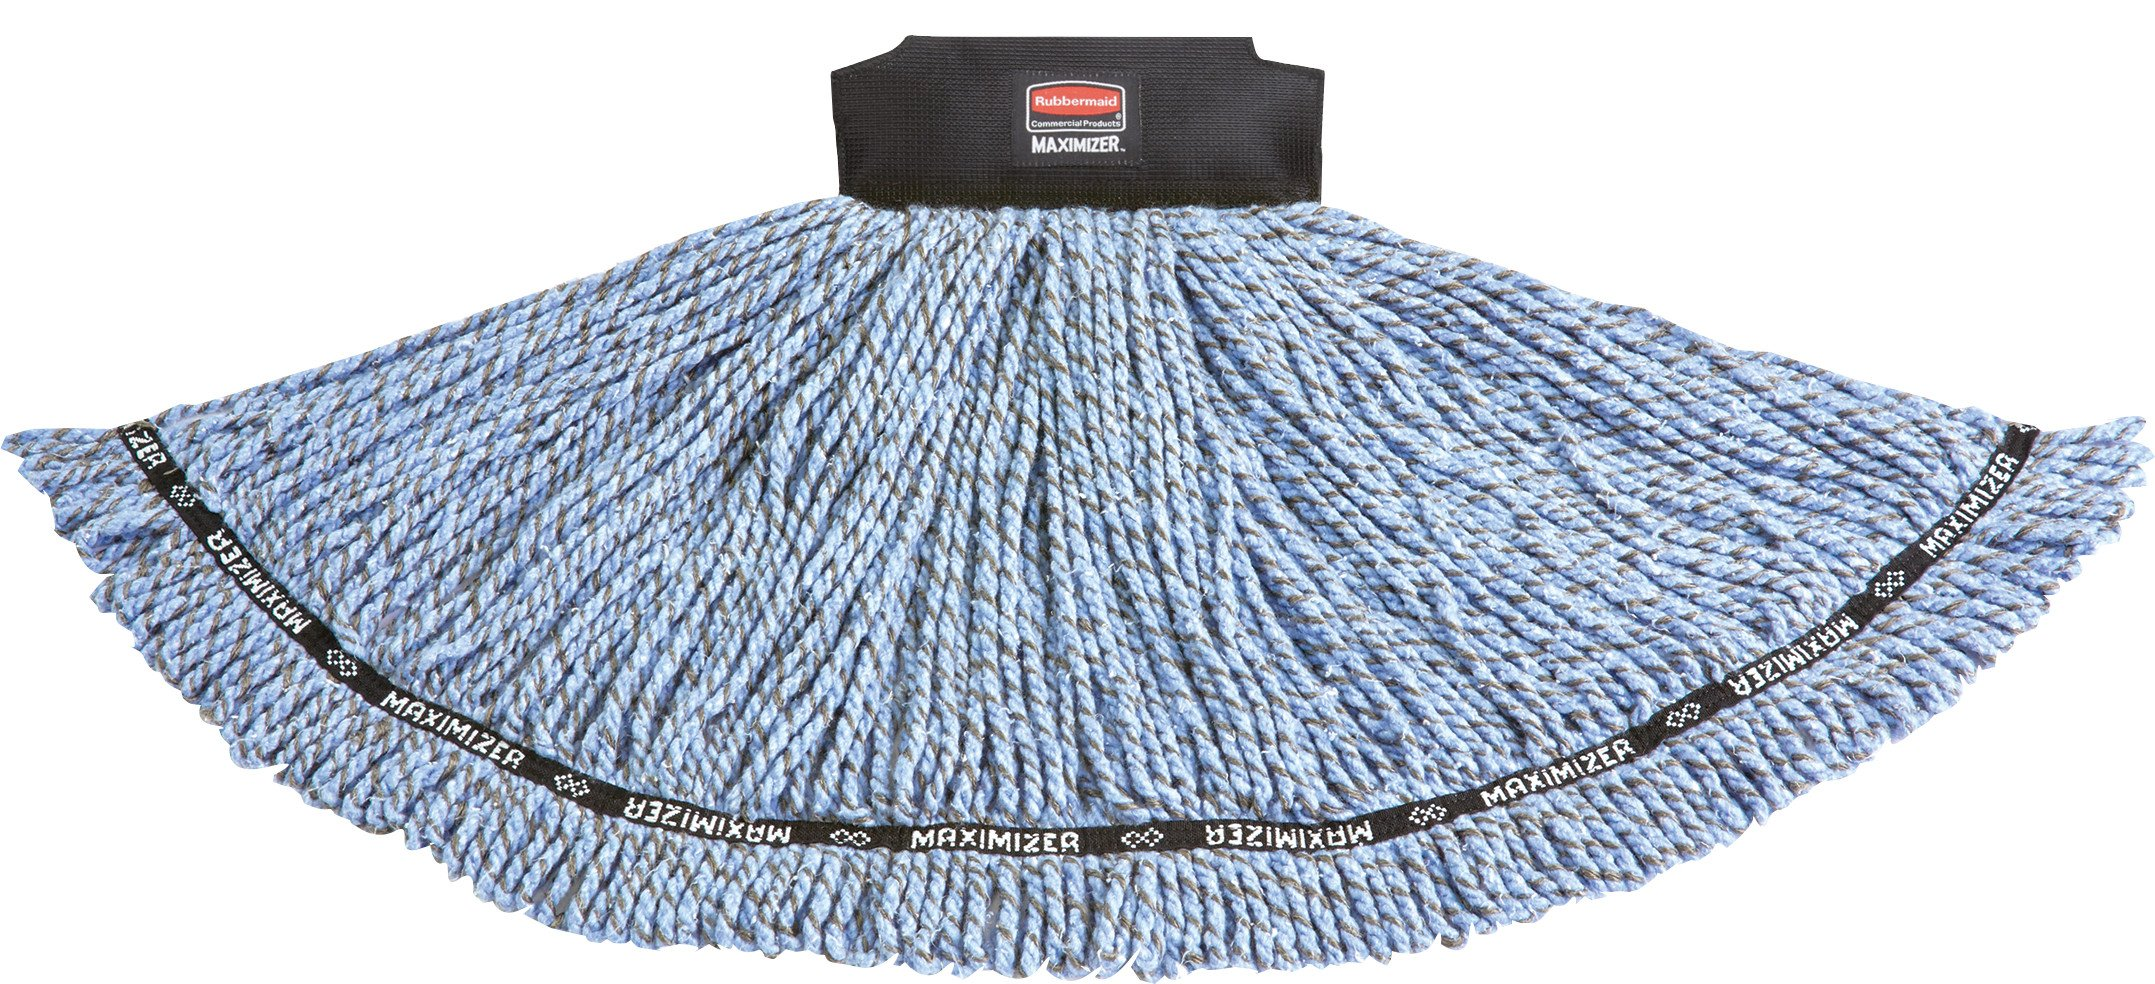 Rubbermaid Commercial 1924803 Maximizer Mop Head, Shrinkless Blend, Medium, Blue